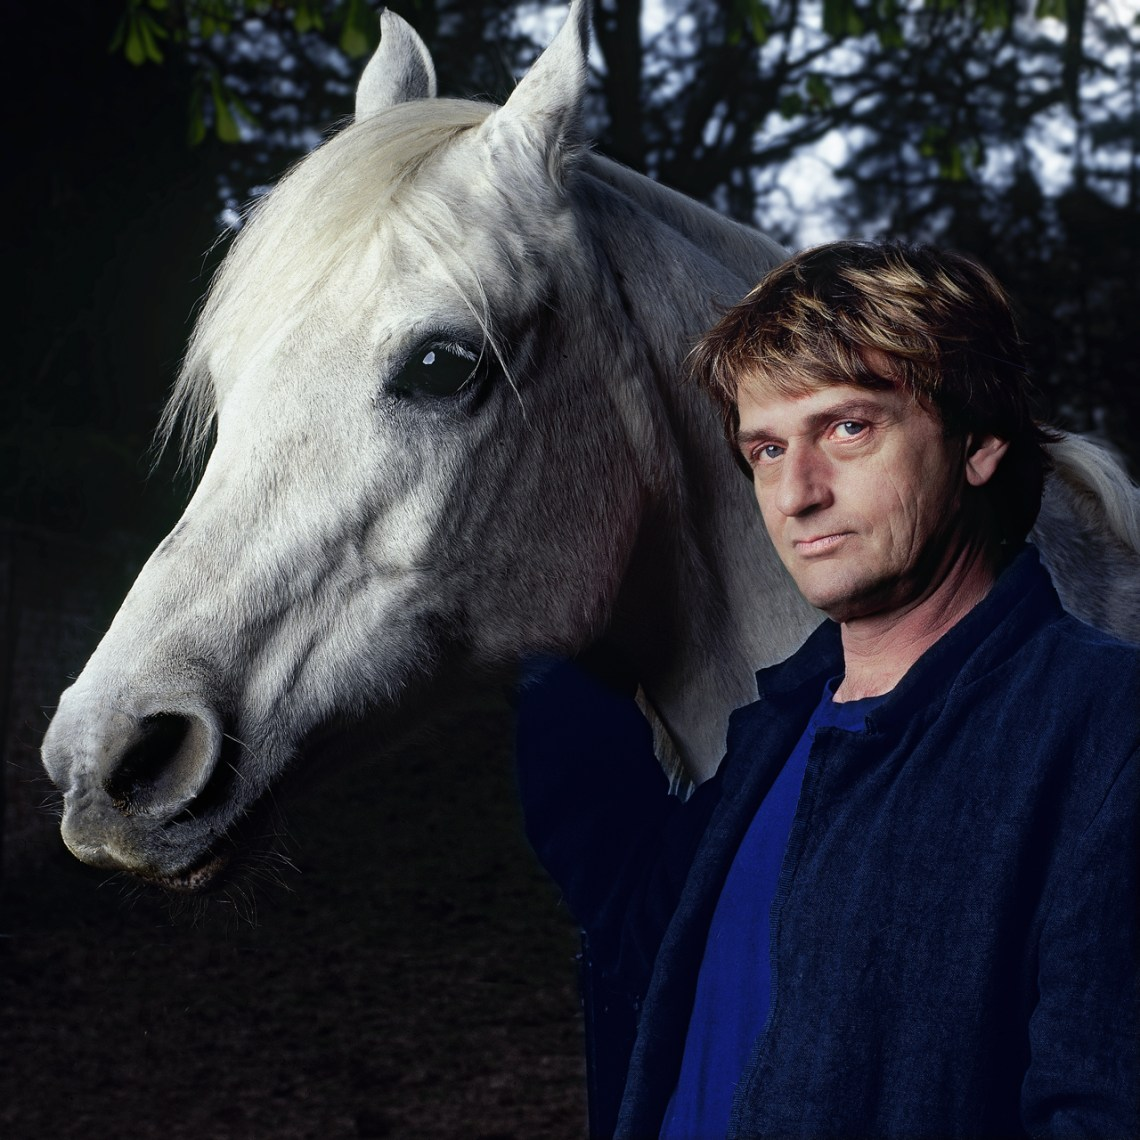 Mike-Oldfield-horse-2.Arrowsmith